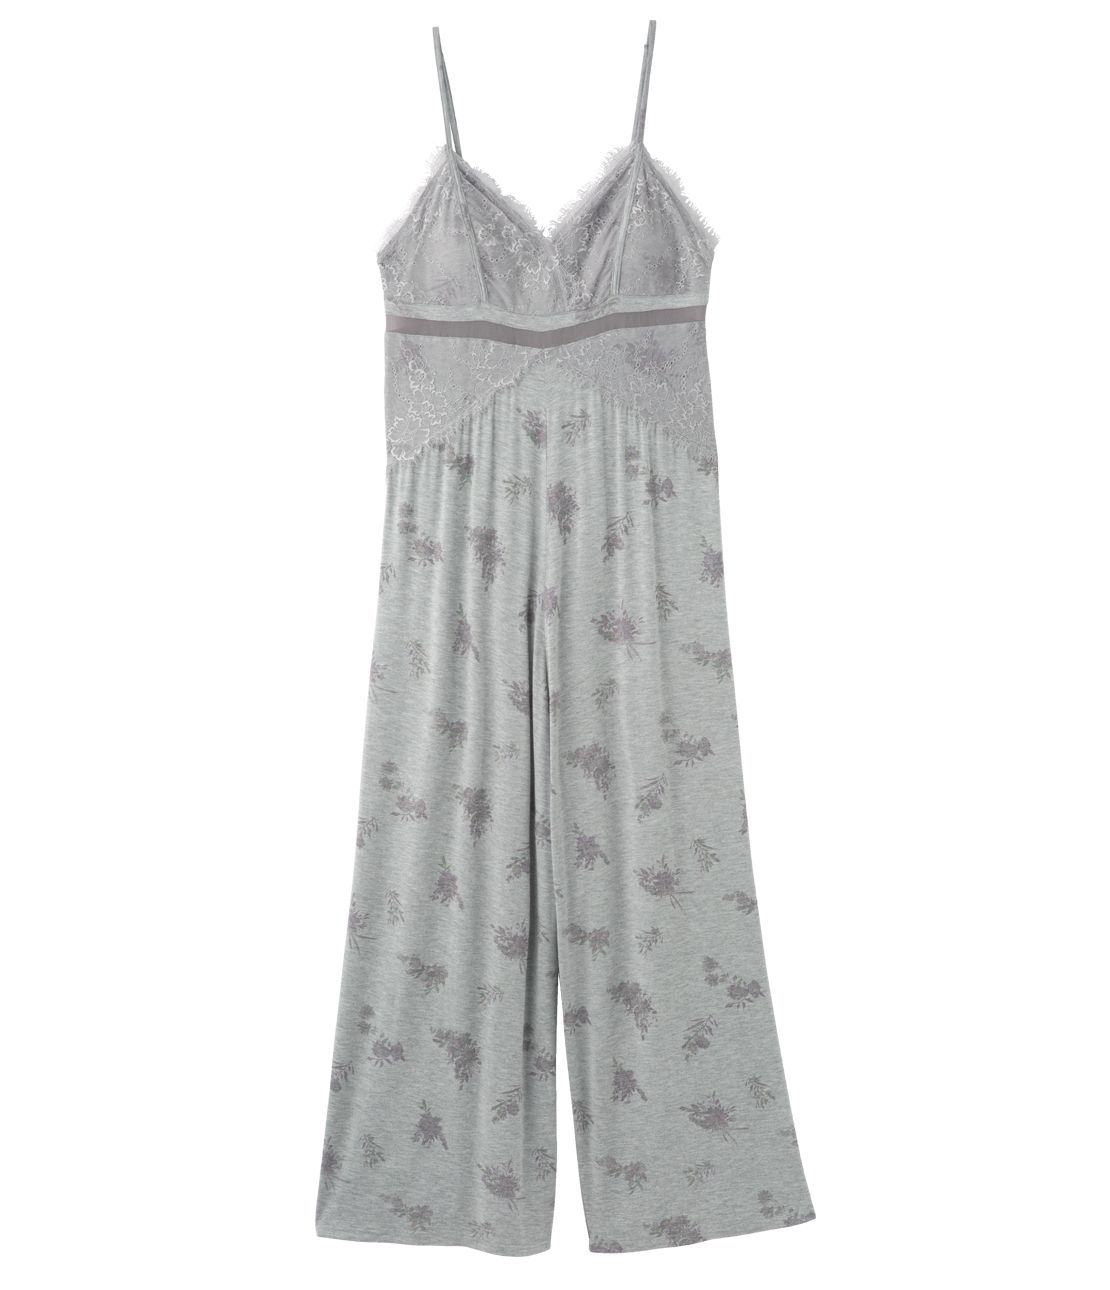 Soft rayon path debt cami all-in-one